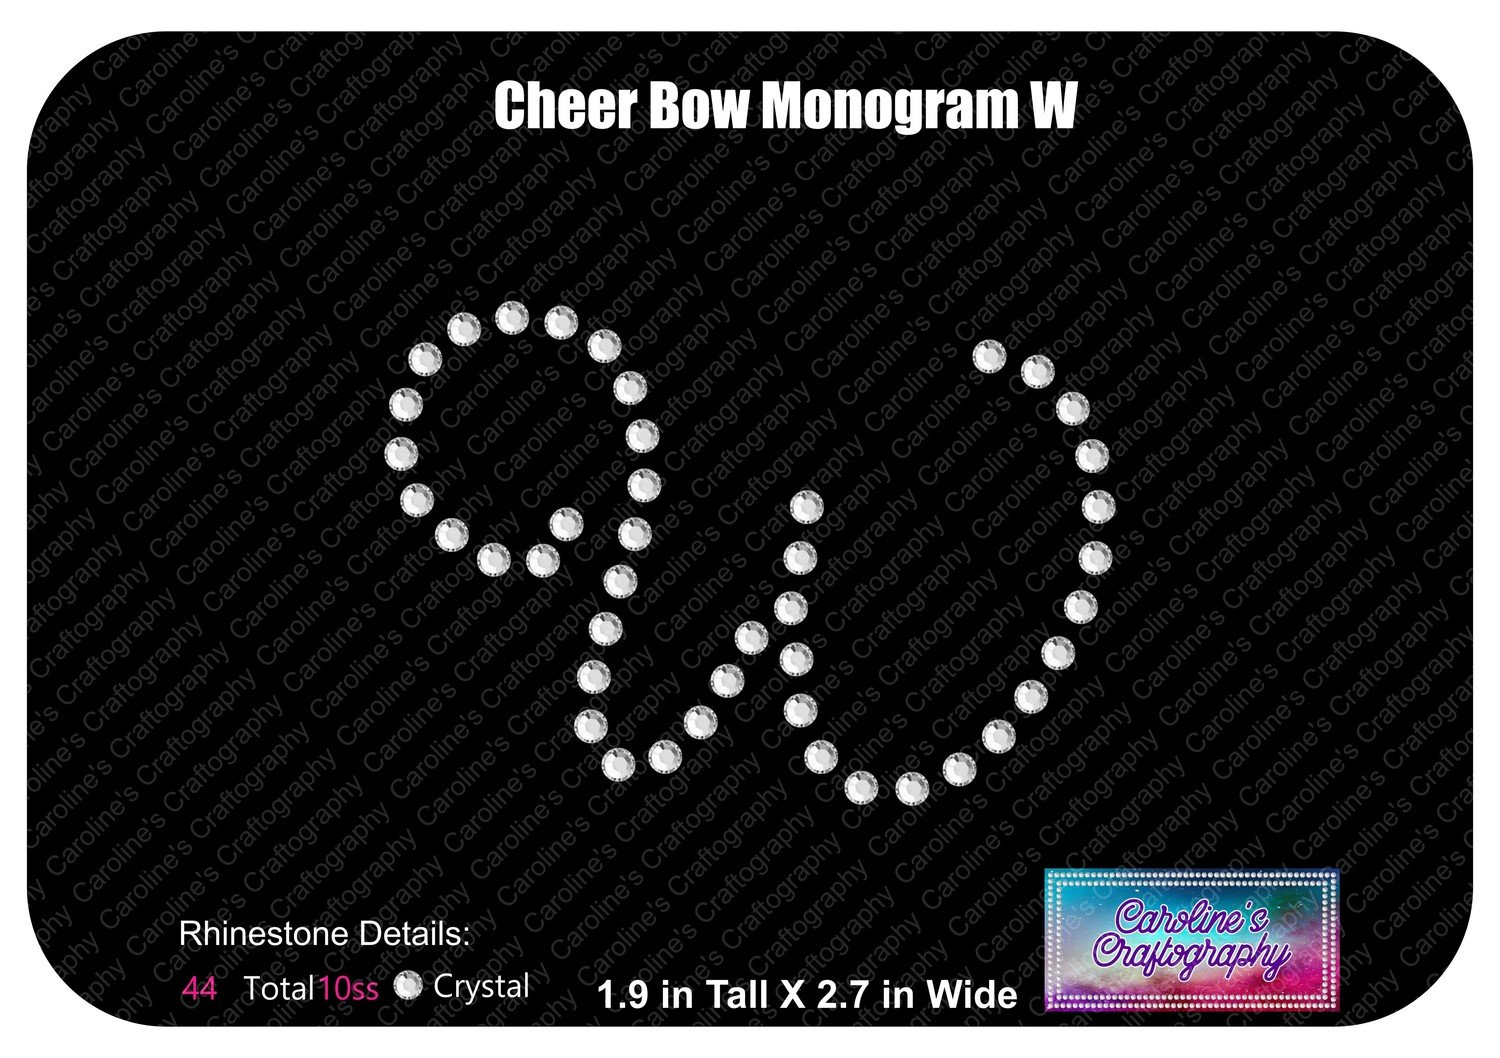 W Monogram Cheer Add-on Stone